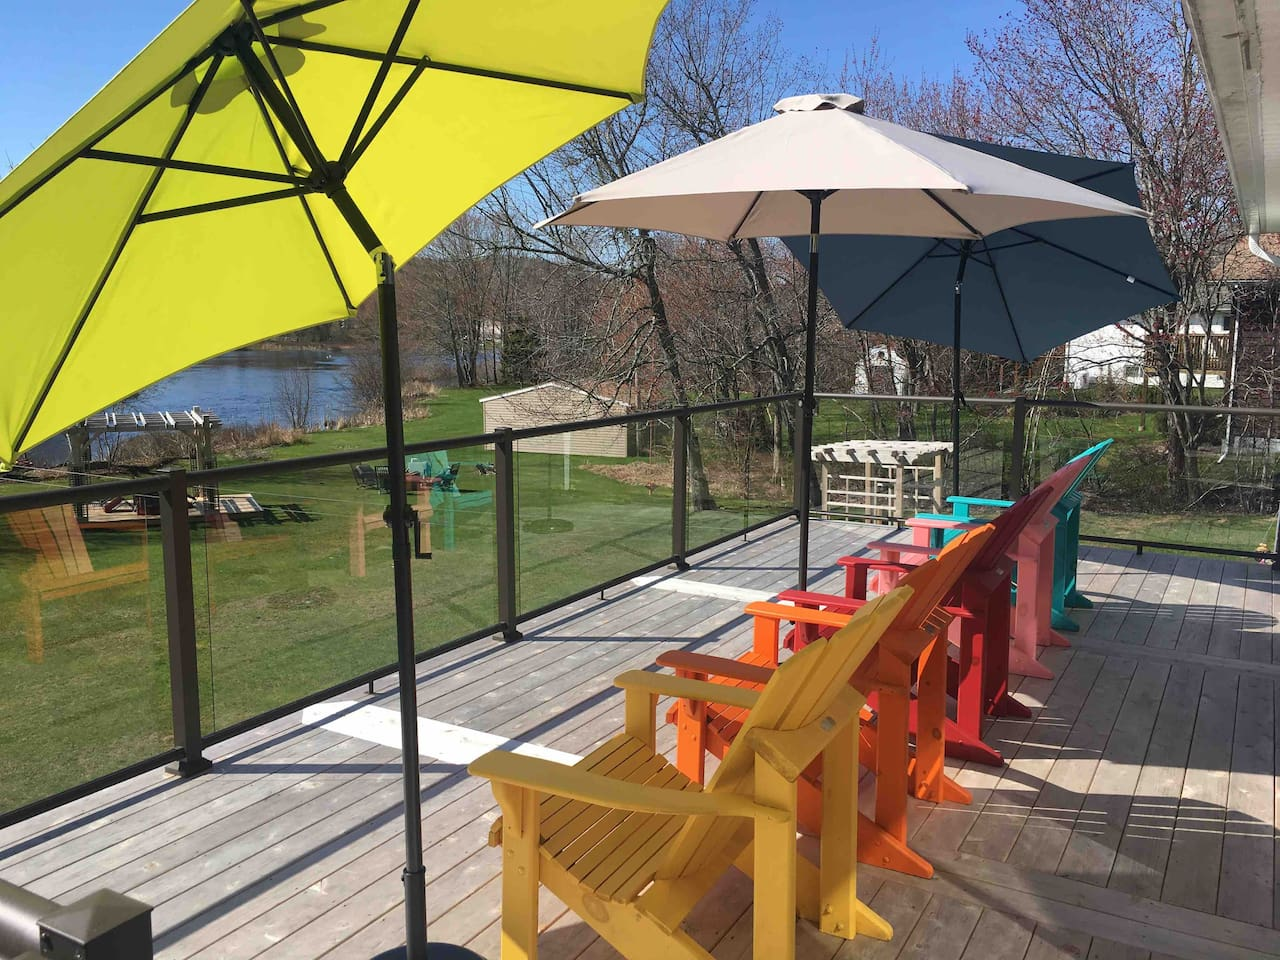 Enjoy the patio on a summer day overlooking the lake! ❤️